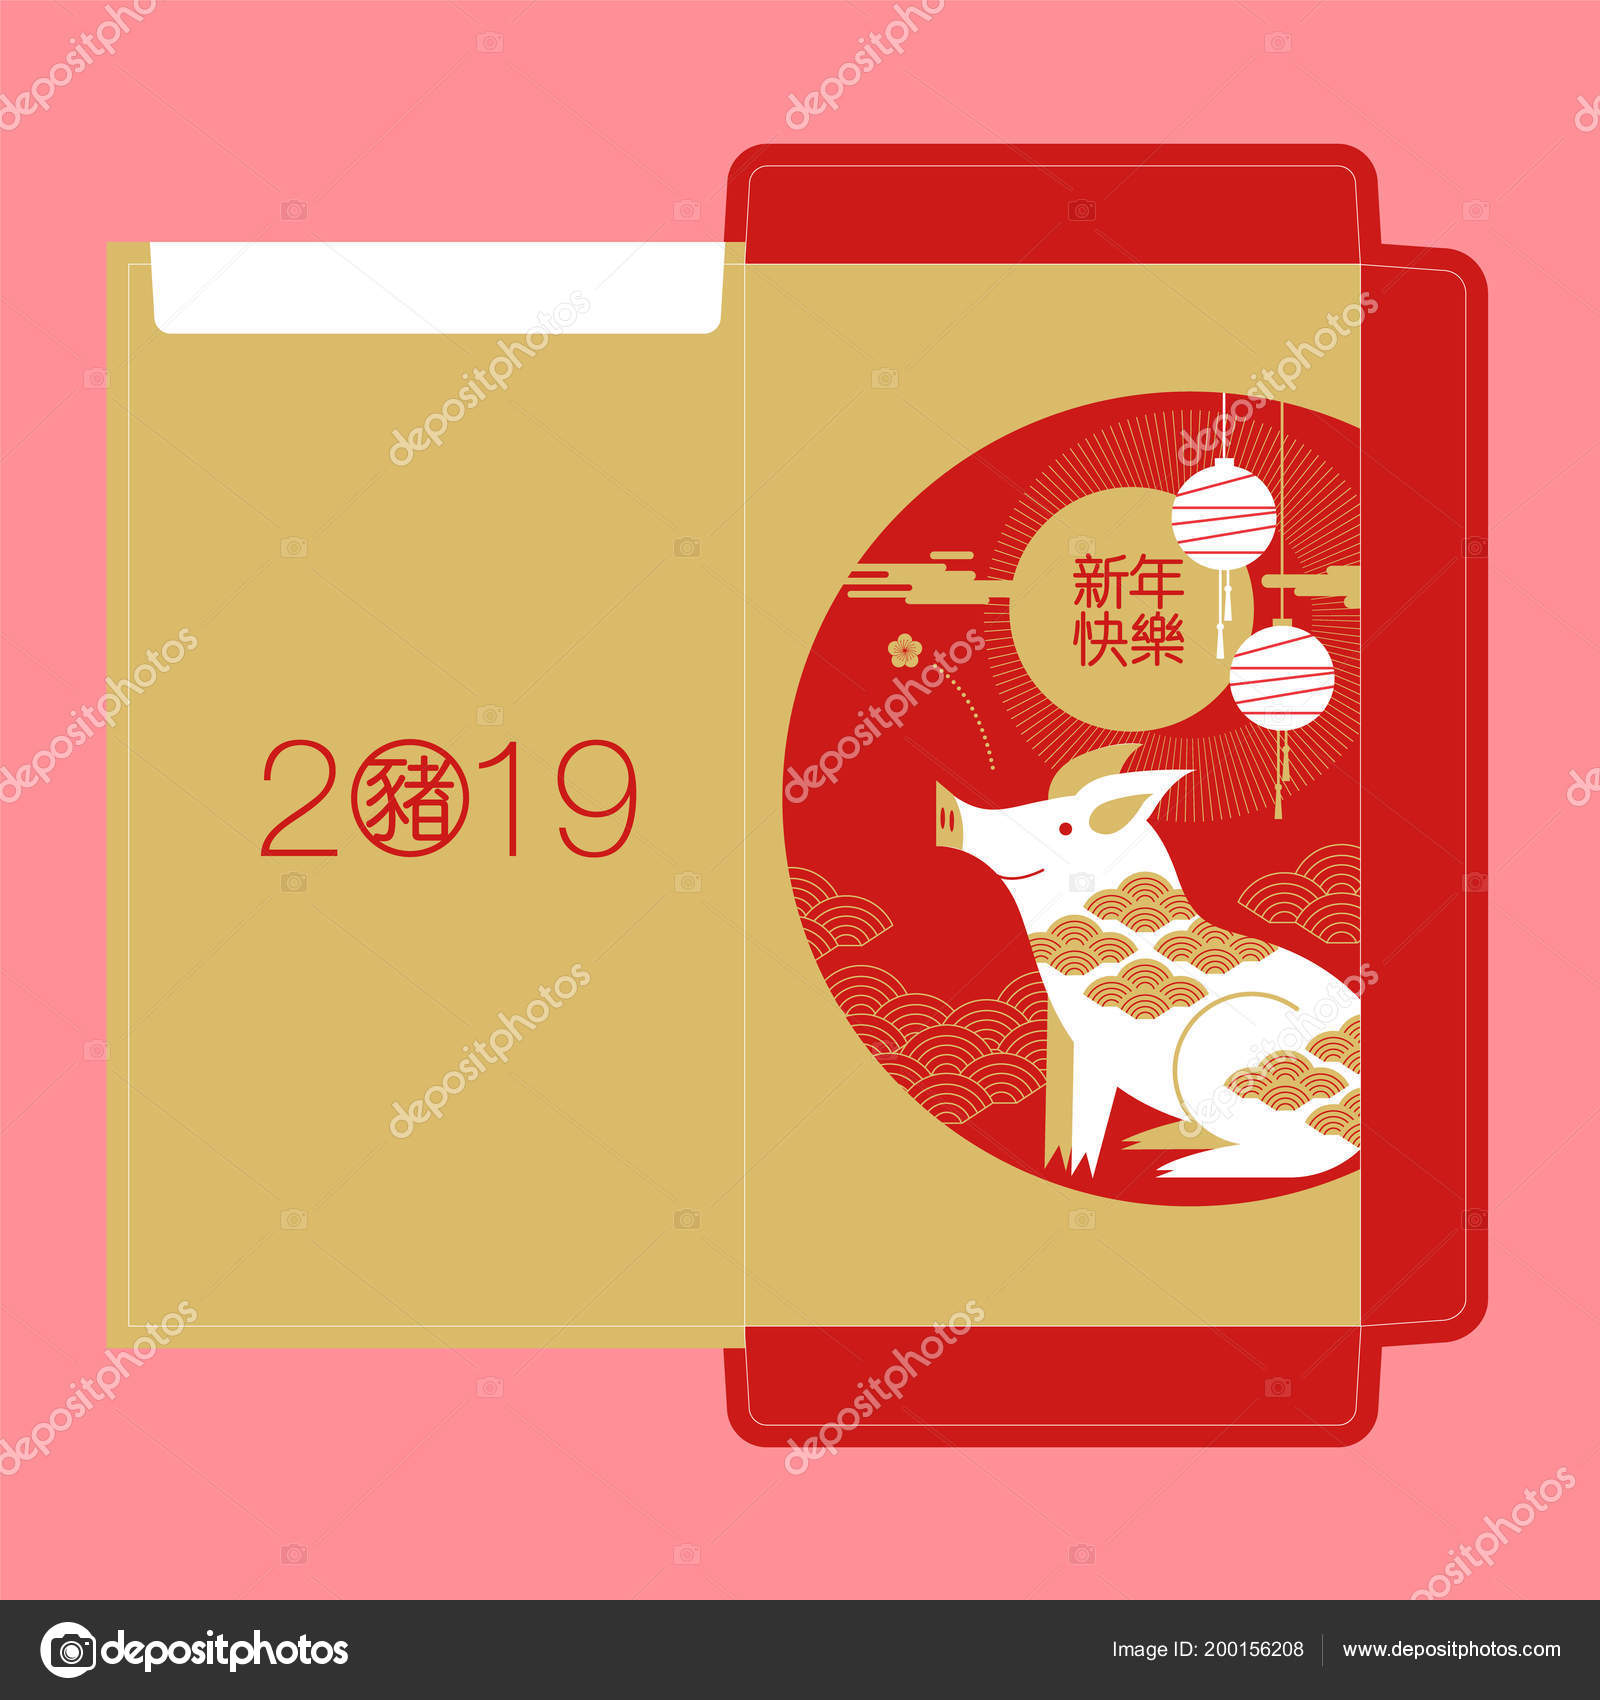 Envelope reward happy new year 2019 chinese new year greetings envelope reward happy new year 2019 chinese new year greetings stock vector m4hsunfo